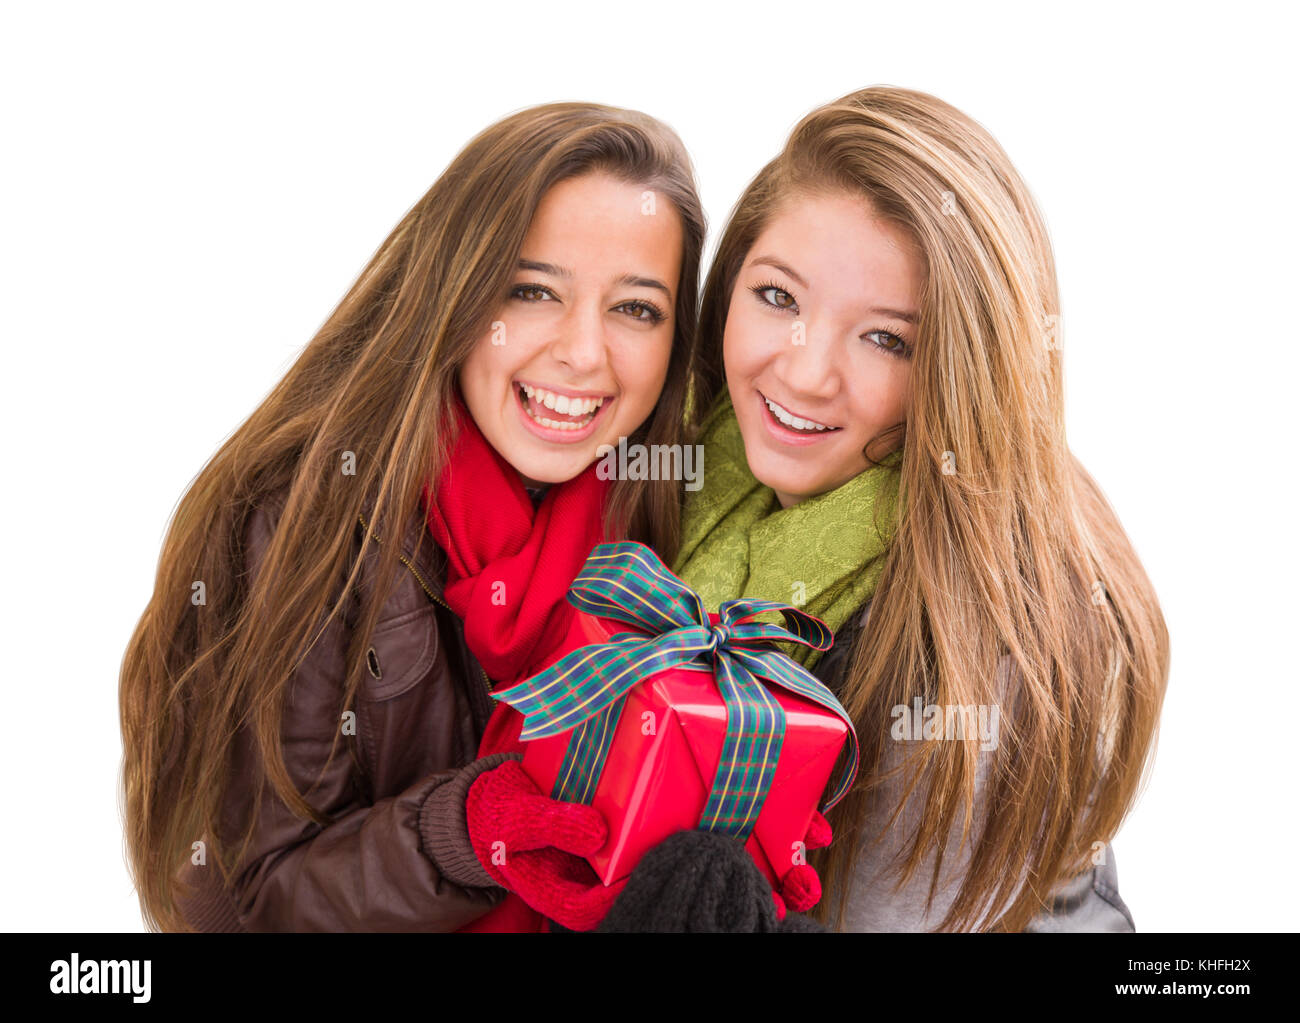 Mixed Race Young Adult Females Holding A Christmas Gift Isolated on ...